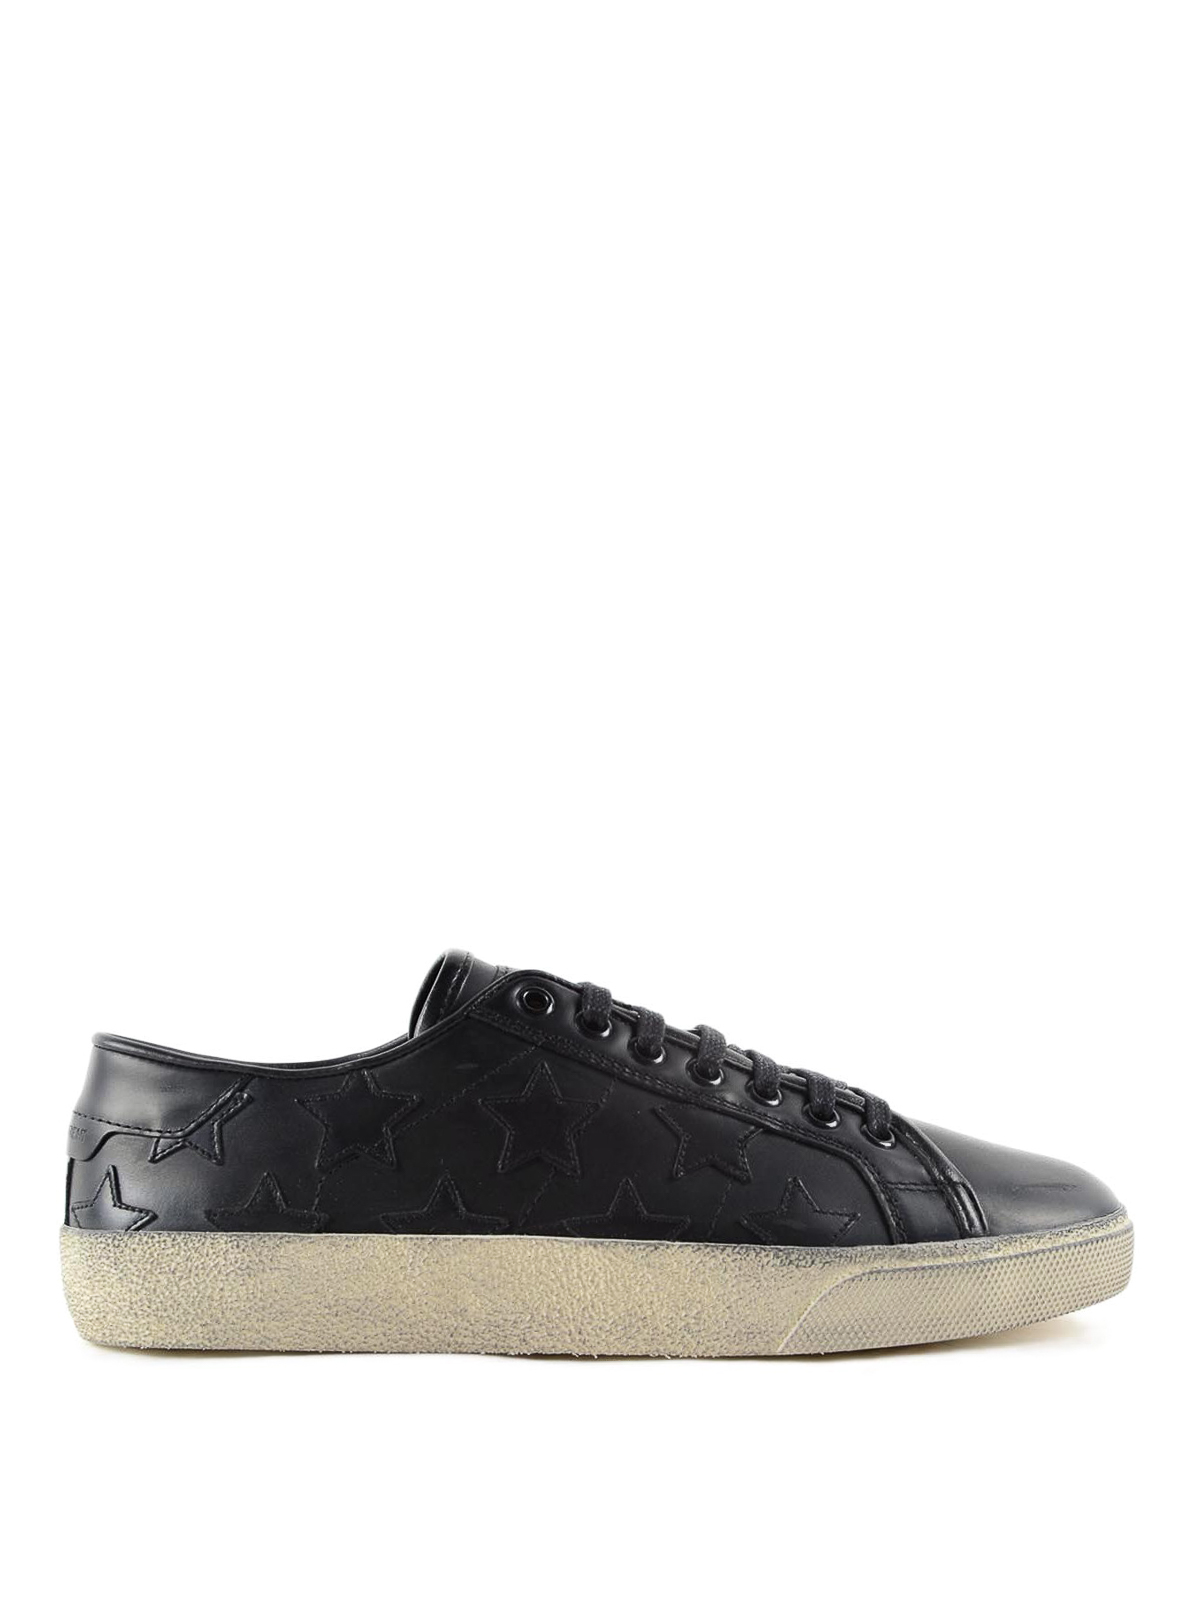 star leather sneakers by saint laurent trainers ikrix. Black Bedroom Furniture Sets. Home Design Ideas